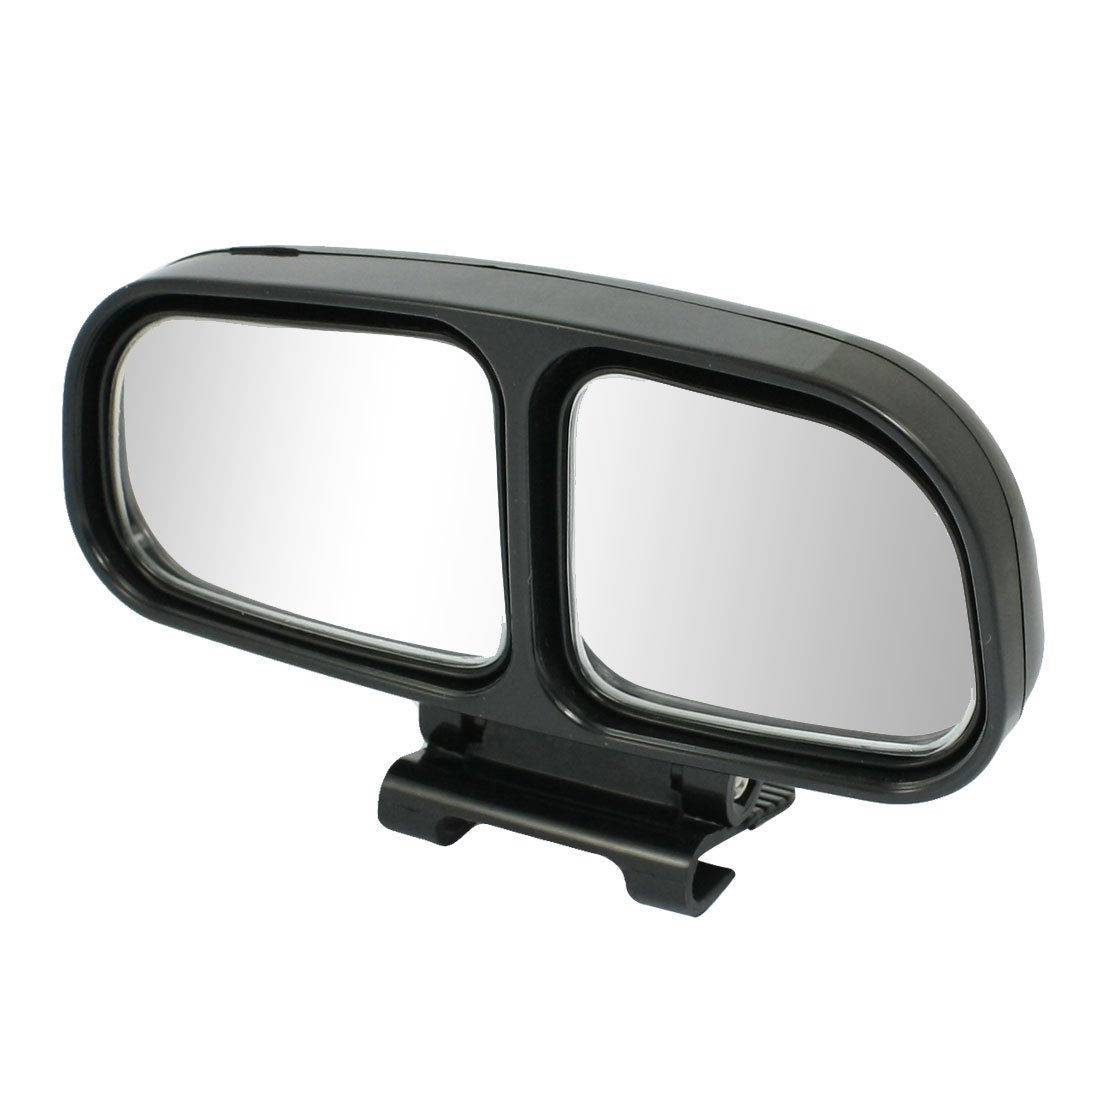 Promotion Left Side Rear View Blind Spot Auxiliary font b Mirror b font Black for Truck